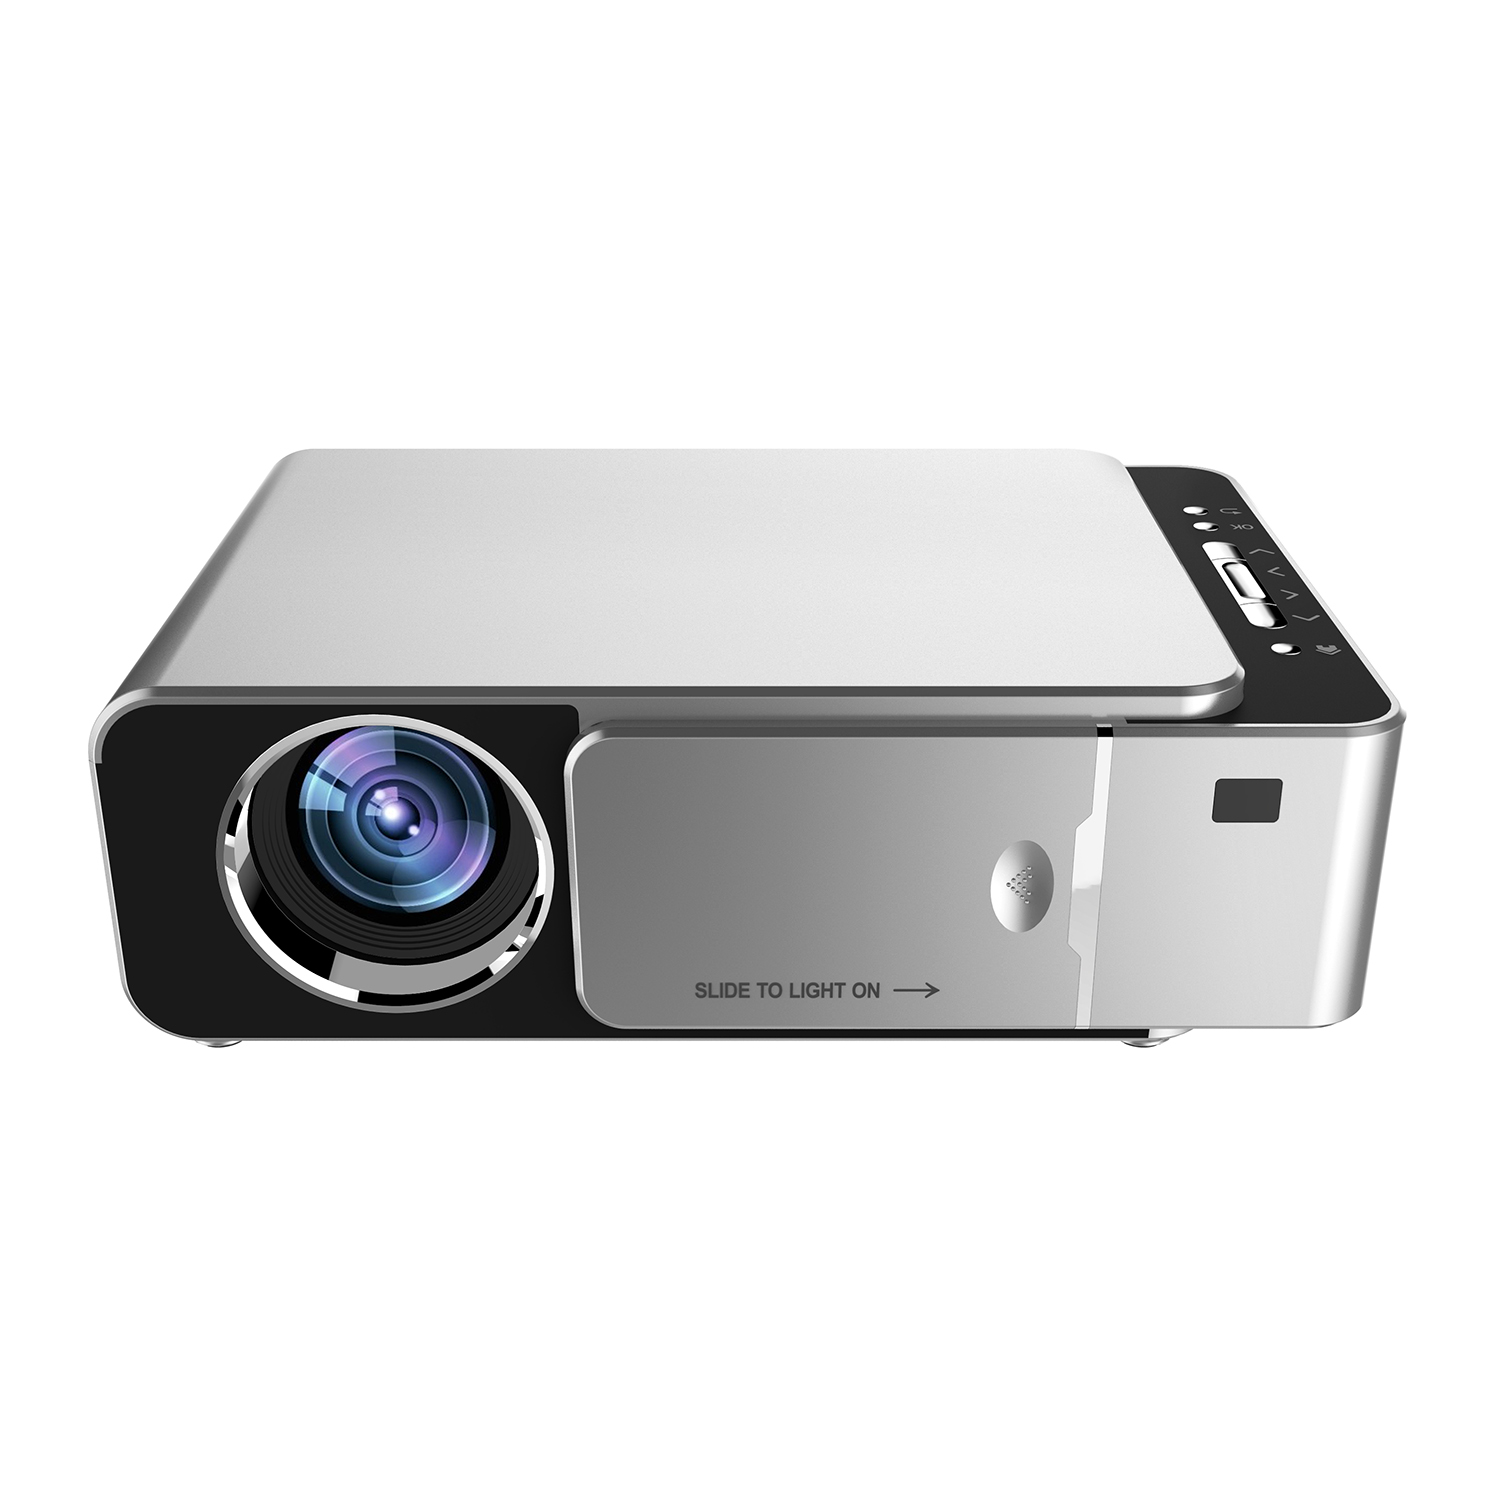 Top HD Multimedia Portable LED Projector Projector Home Theater HDMI VGA AV USB SD Lamp Remote Control Projector Home Theatre